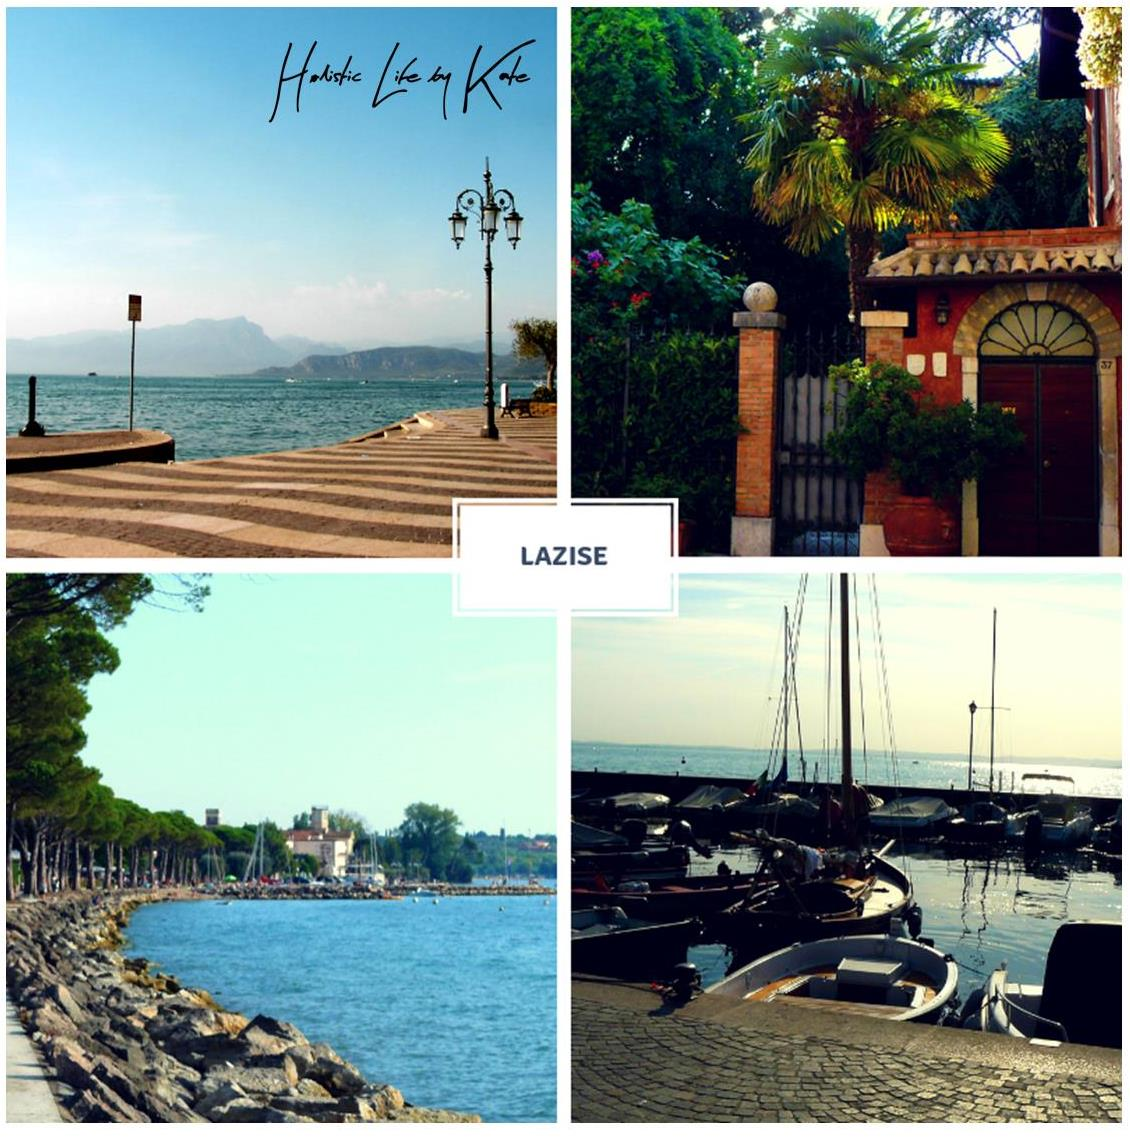 One day trip in Lazise